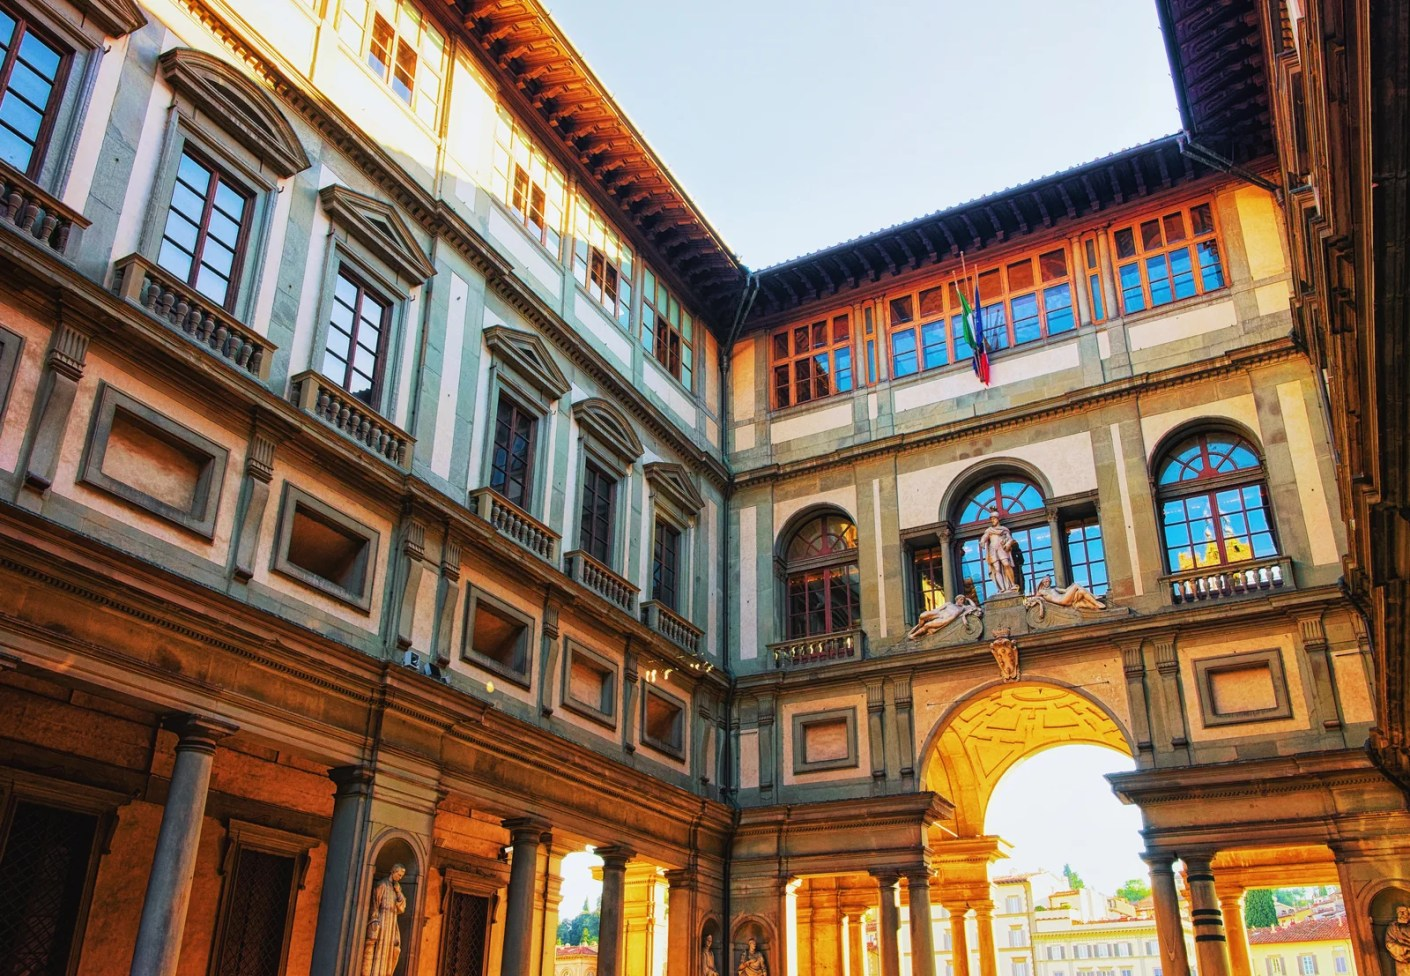 The Uffizi Gallery in Florence. (Photo by RomanBabakin / Getty Images)